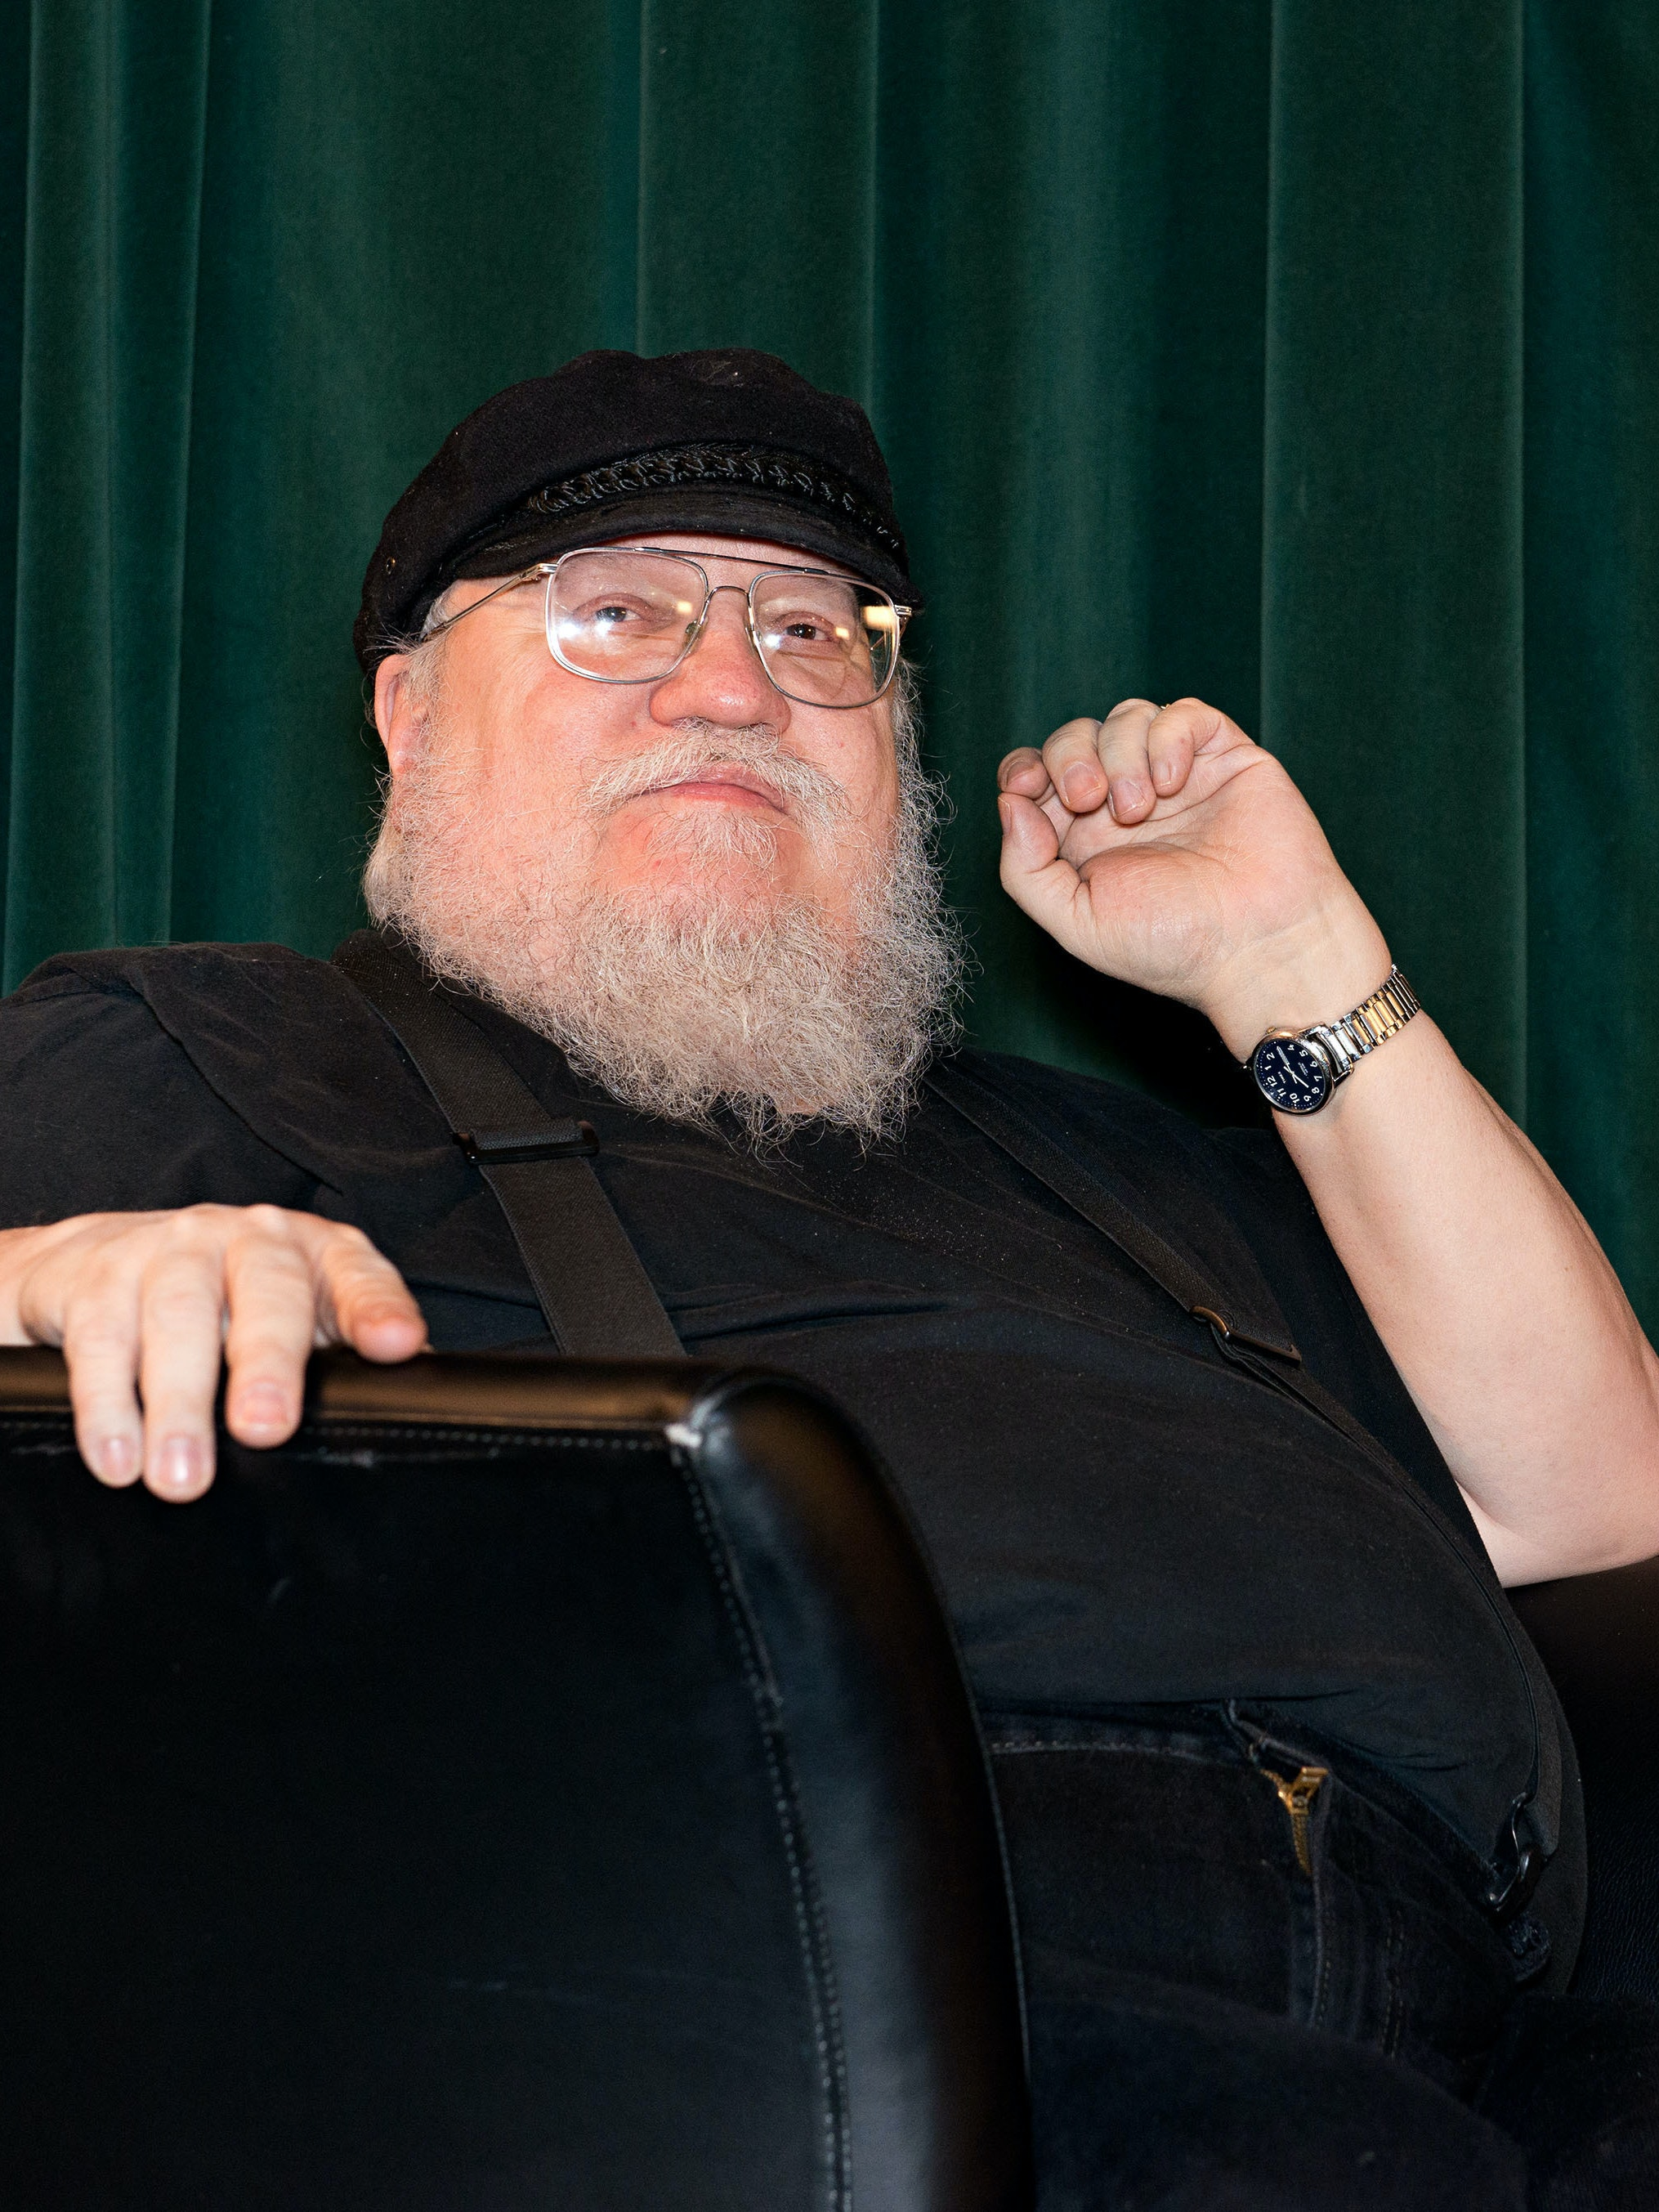 SANTA FE, NM - FEBRUARY 23:  Writer George R. R. Martin participates in a Q & A session following SundanceTV's 'Hap & Leonard' Screening at the Jean Cocteau Theater on February 23, 2016 in Santa Fe, New Mexico.  (Photo by Steve Snowden/Getty Images for AMC Networks)